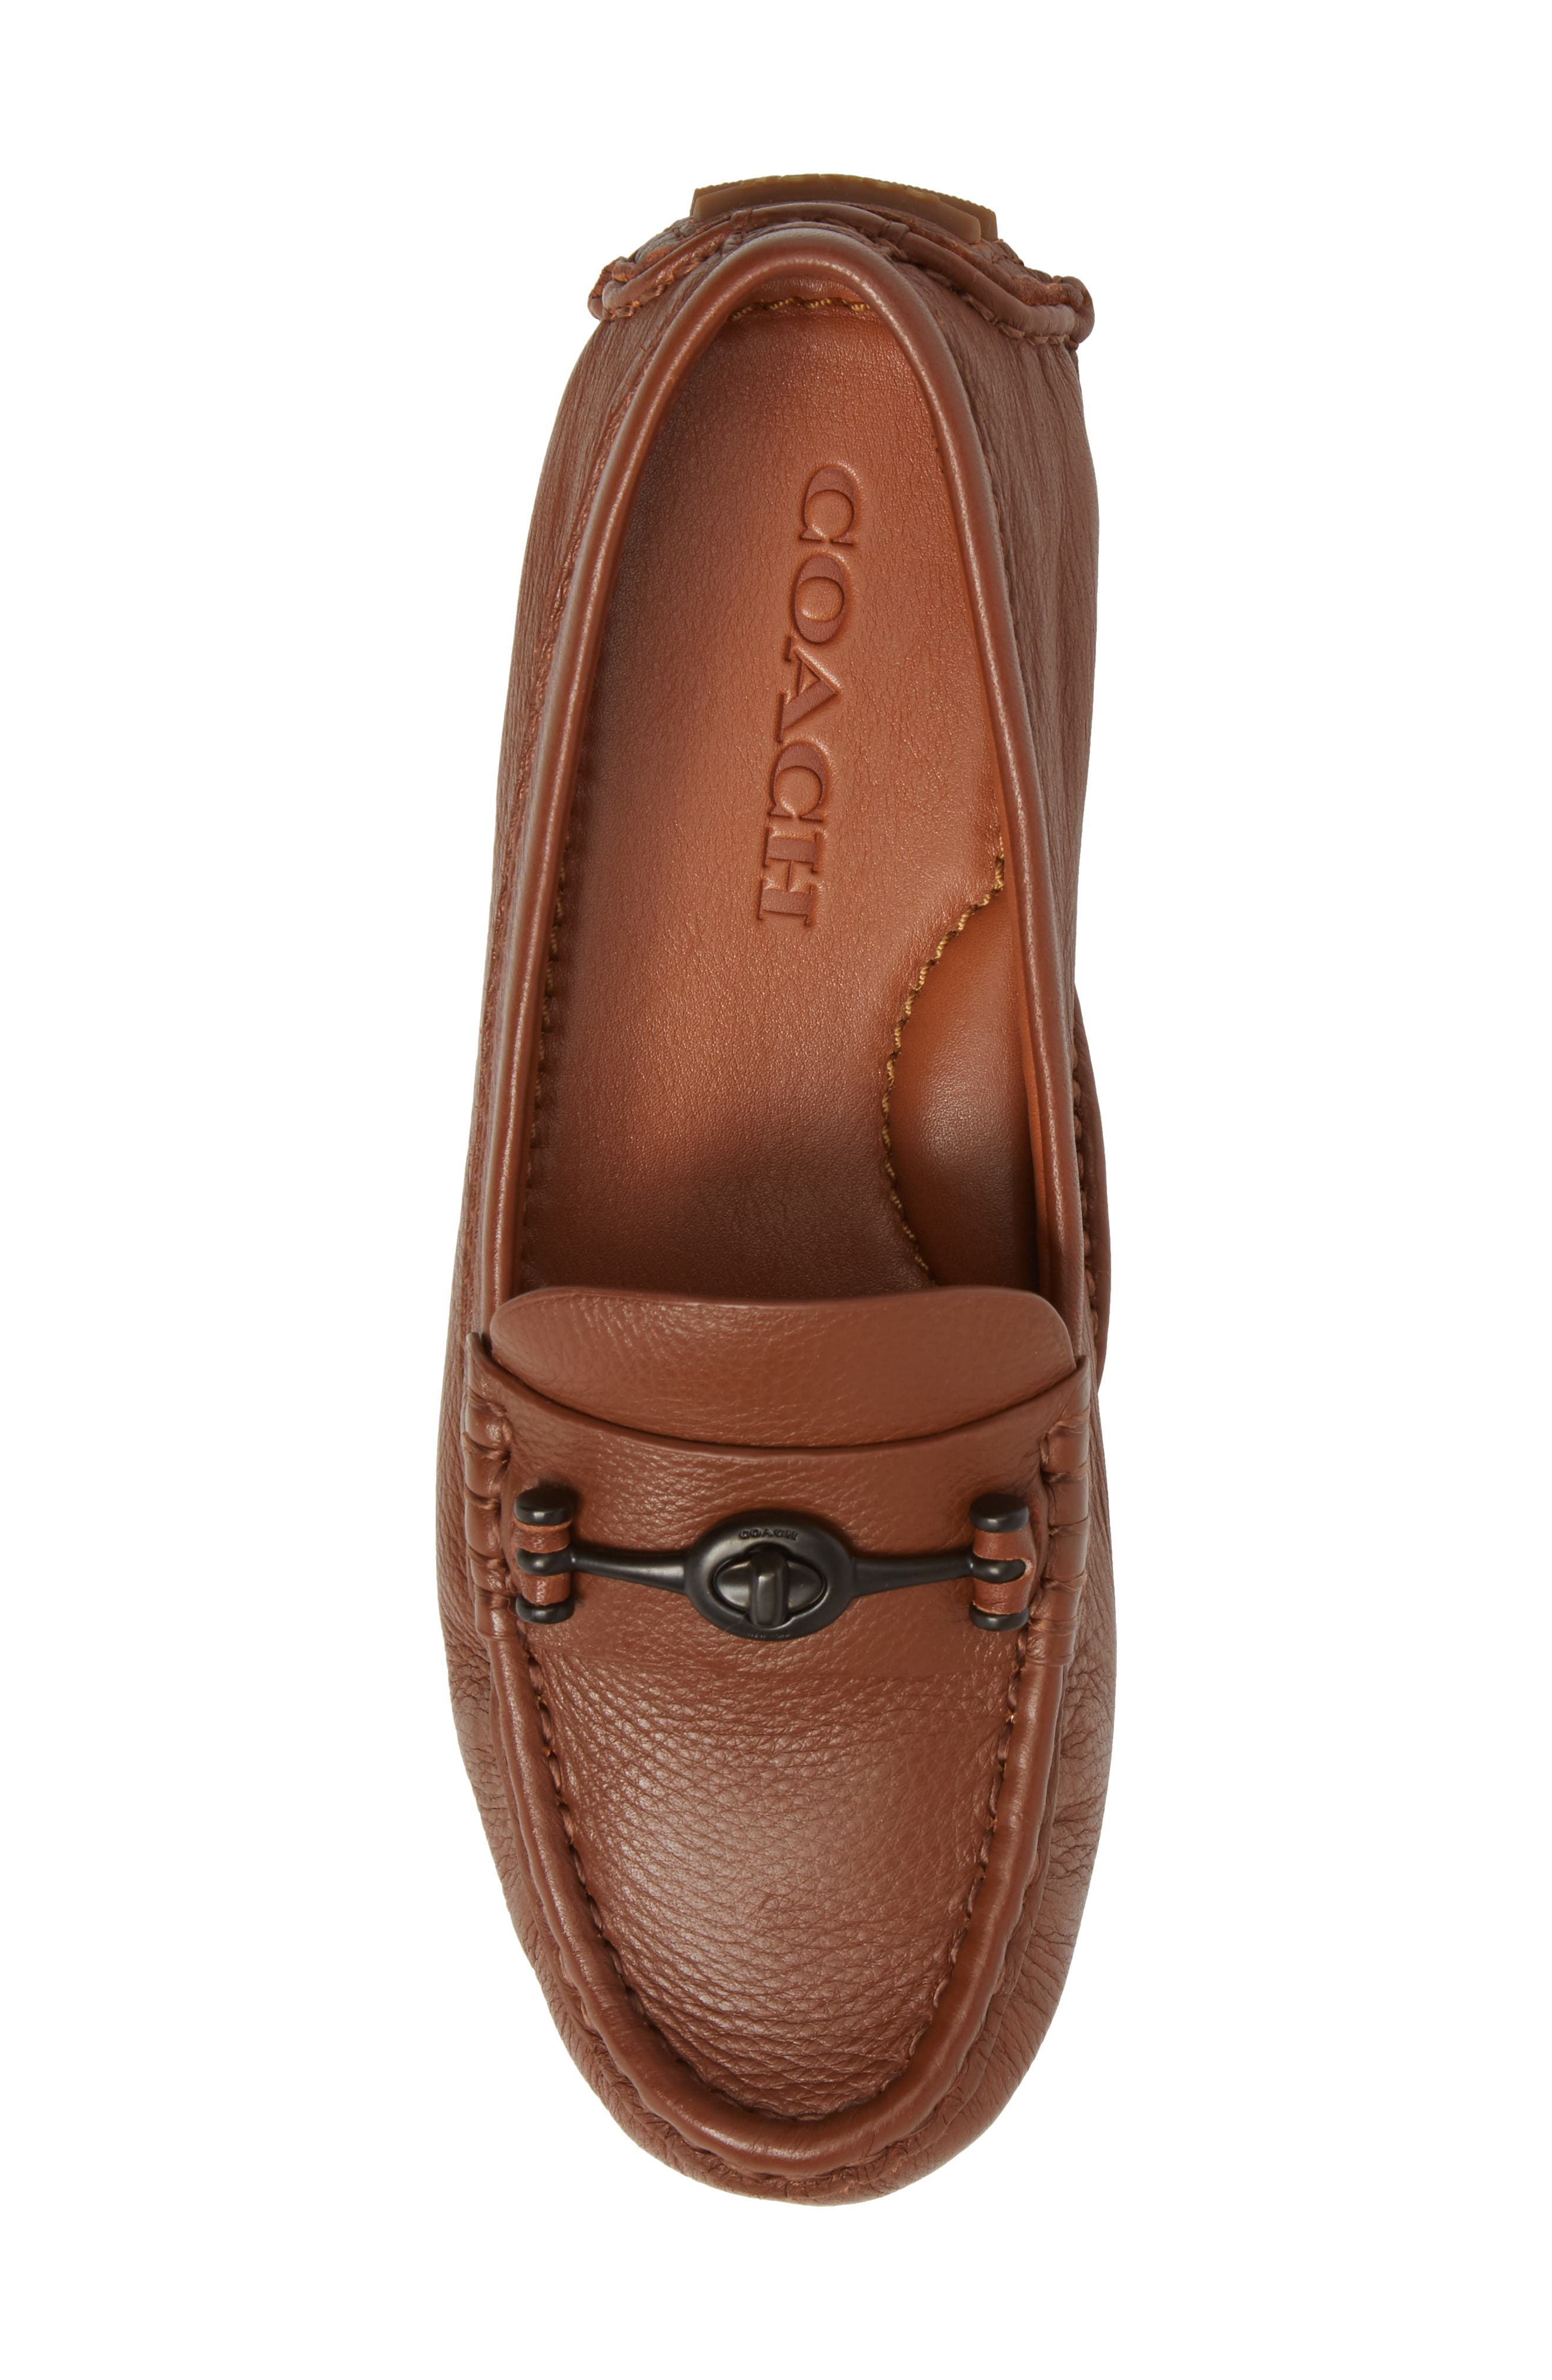 Crosby Driver Loafer,                             Alternate thumbnail 5, color,                             SADDLE LEATHER